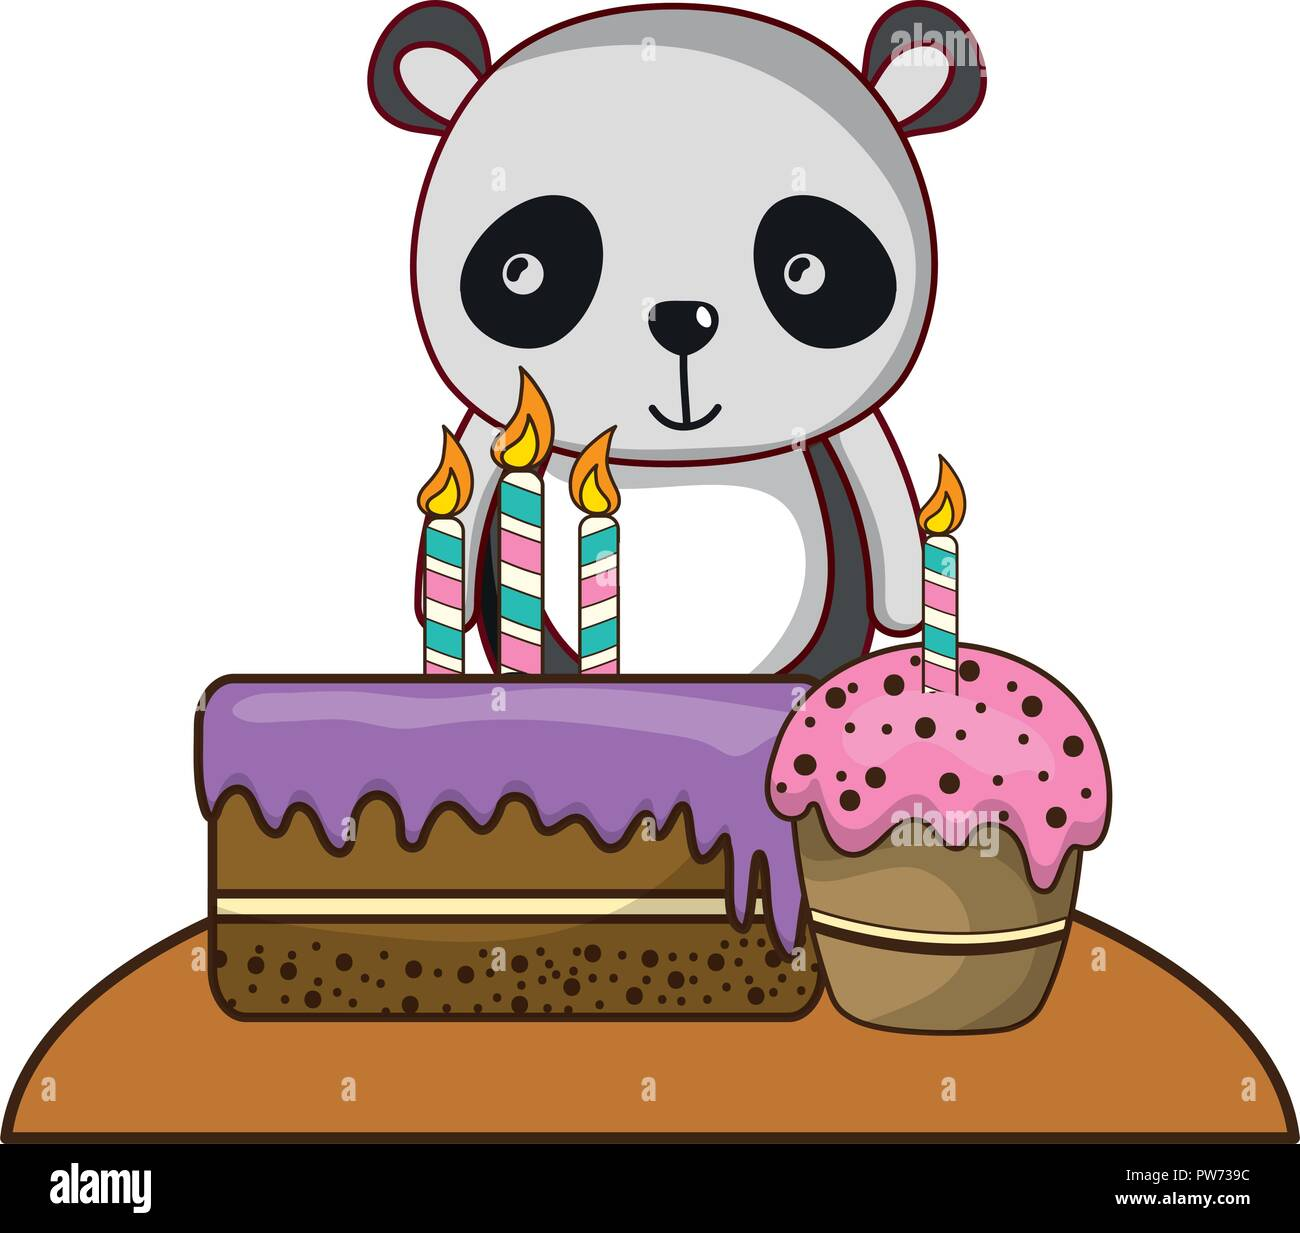 Birthday Cakes Cartoons High Resolution Stock Photography And Images Alamy